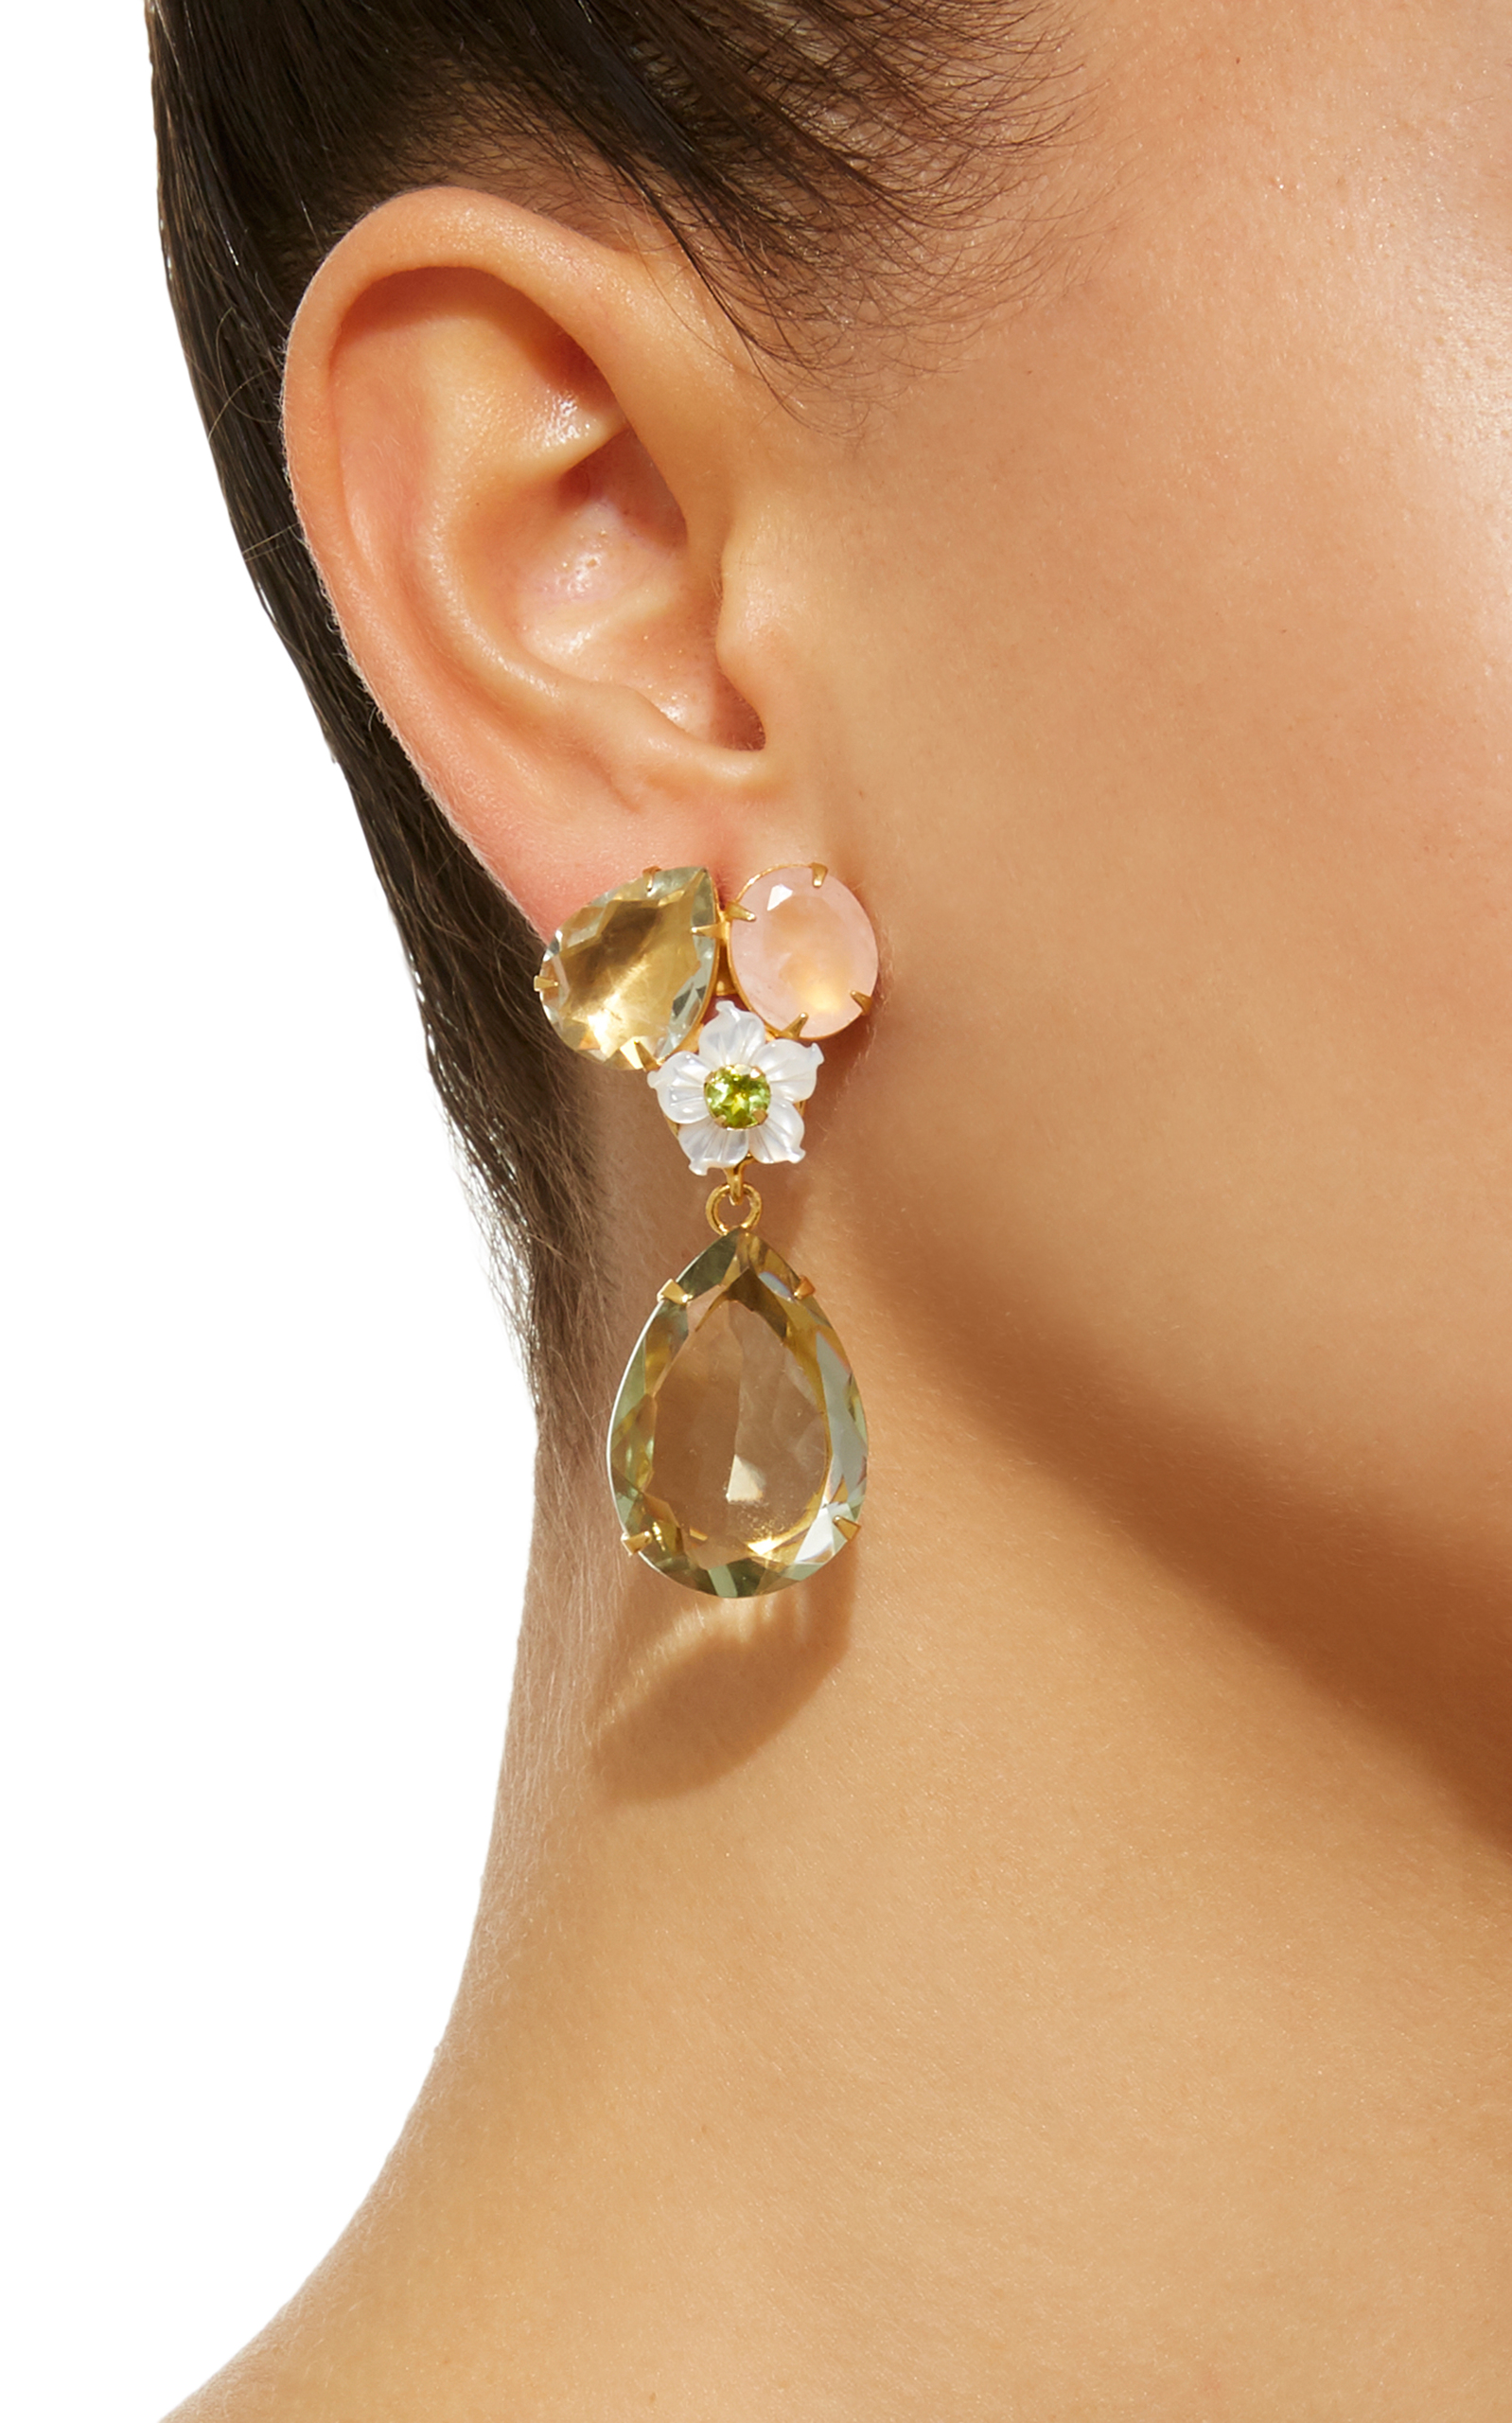 14K Gold-Plated Brass Rose Quartz Green Amethyst White Mother of Pearl Earrings Bounkit opE9W